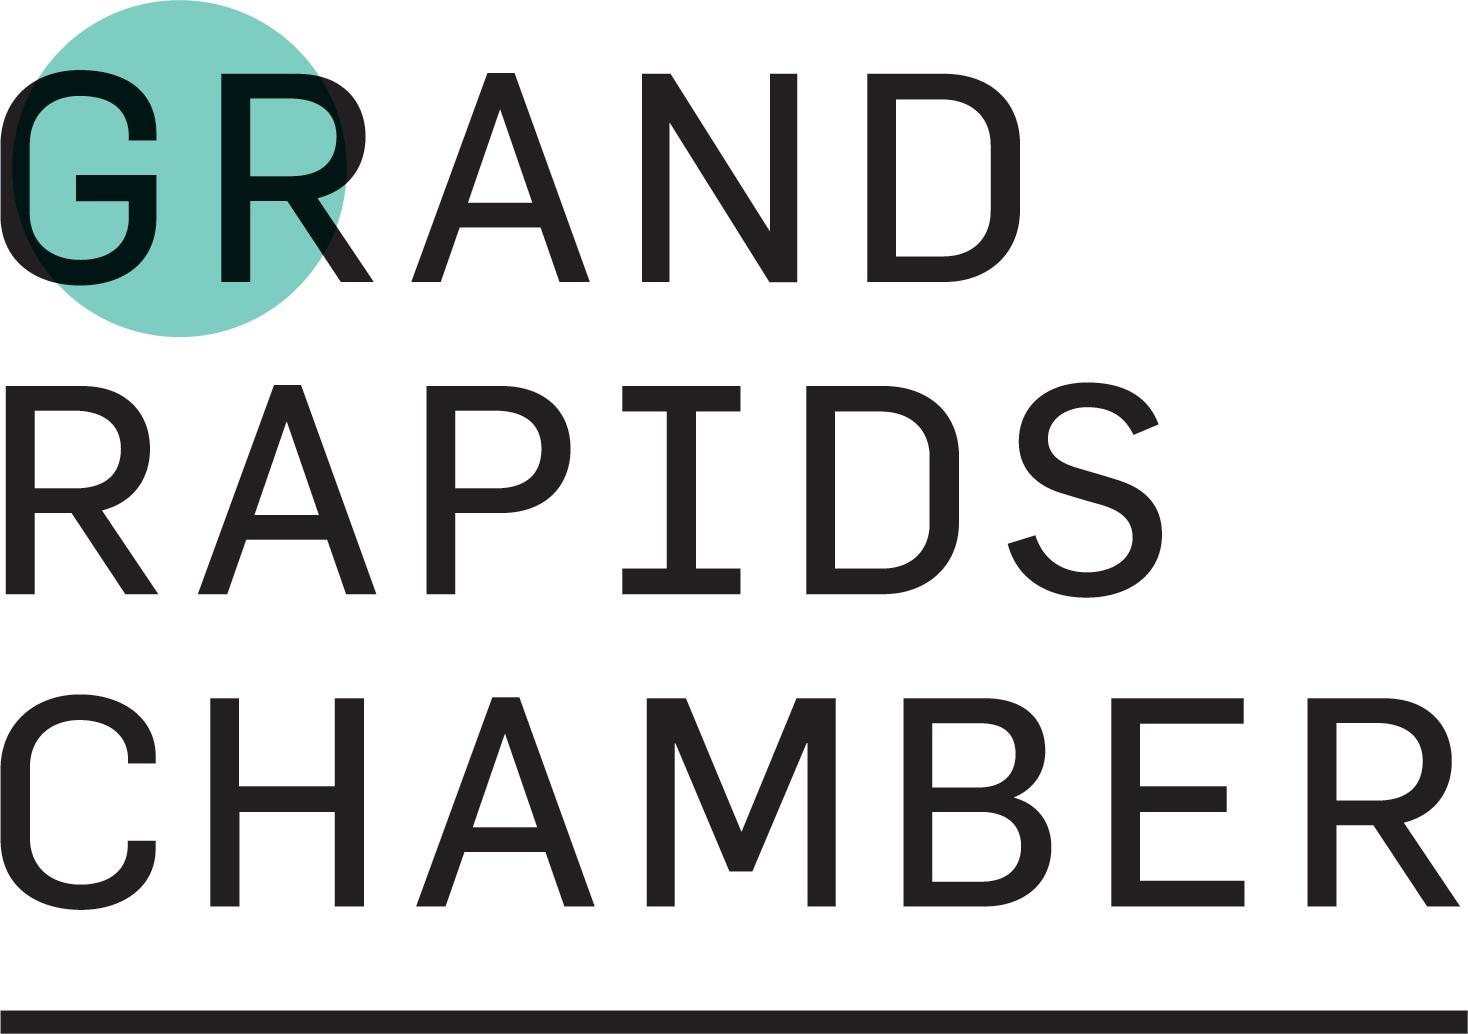 Image result for grand rapids chamber of commerce member